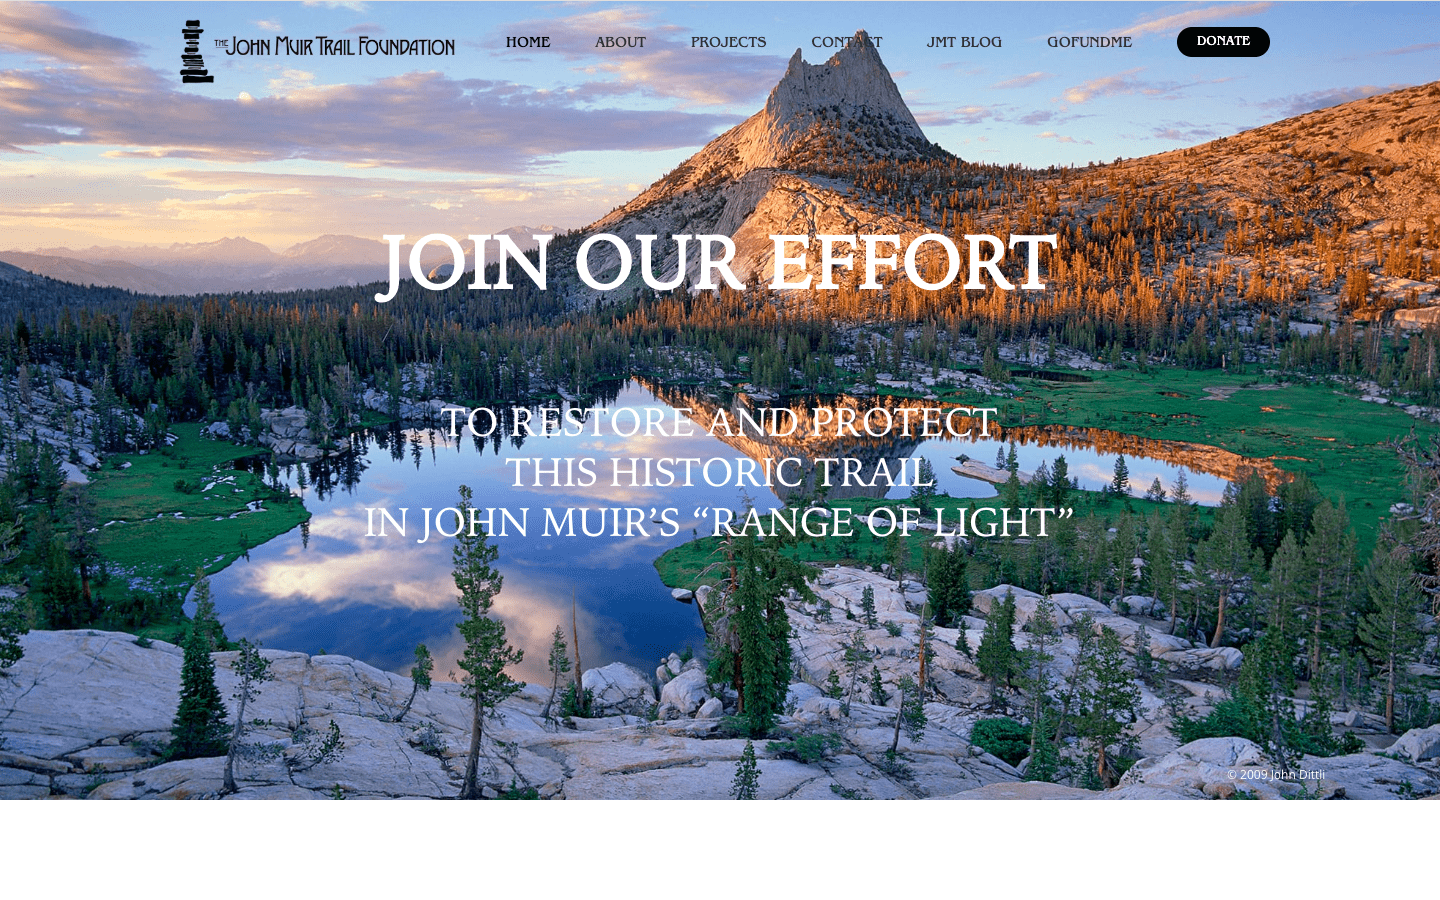 John Muir Trail Foundation